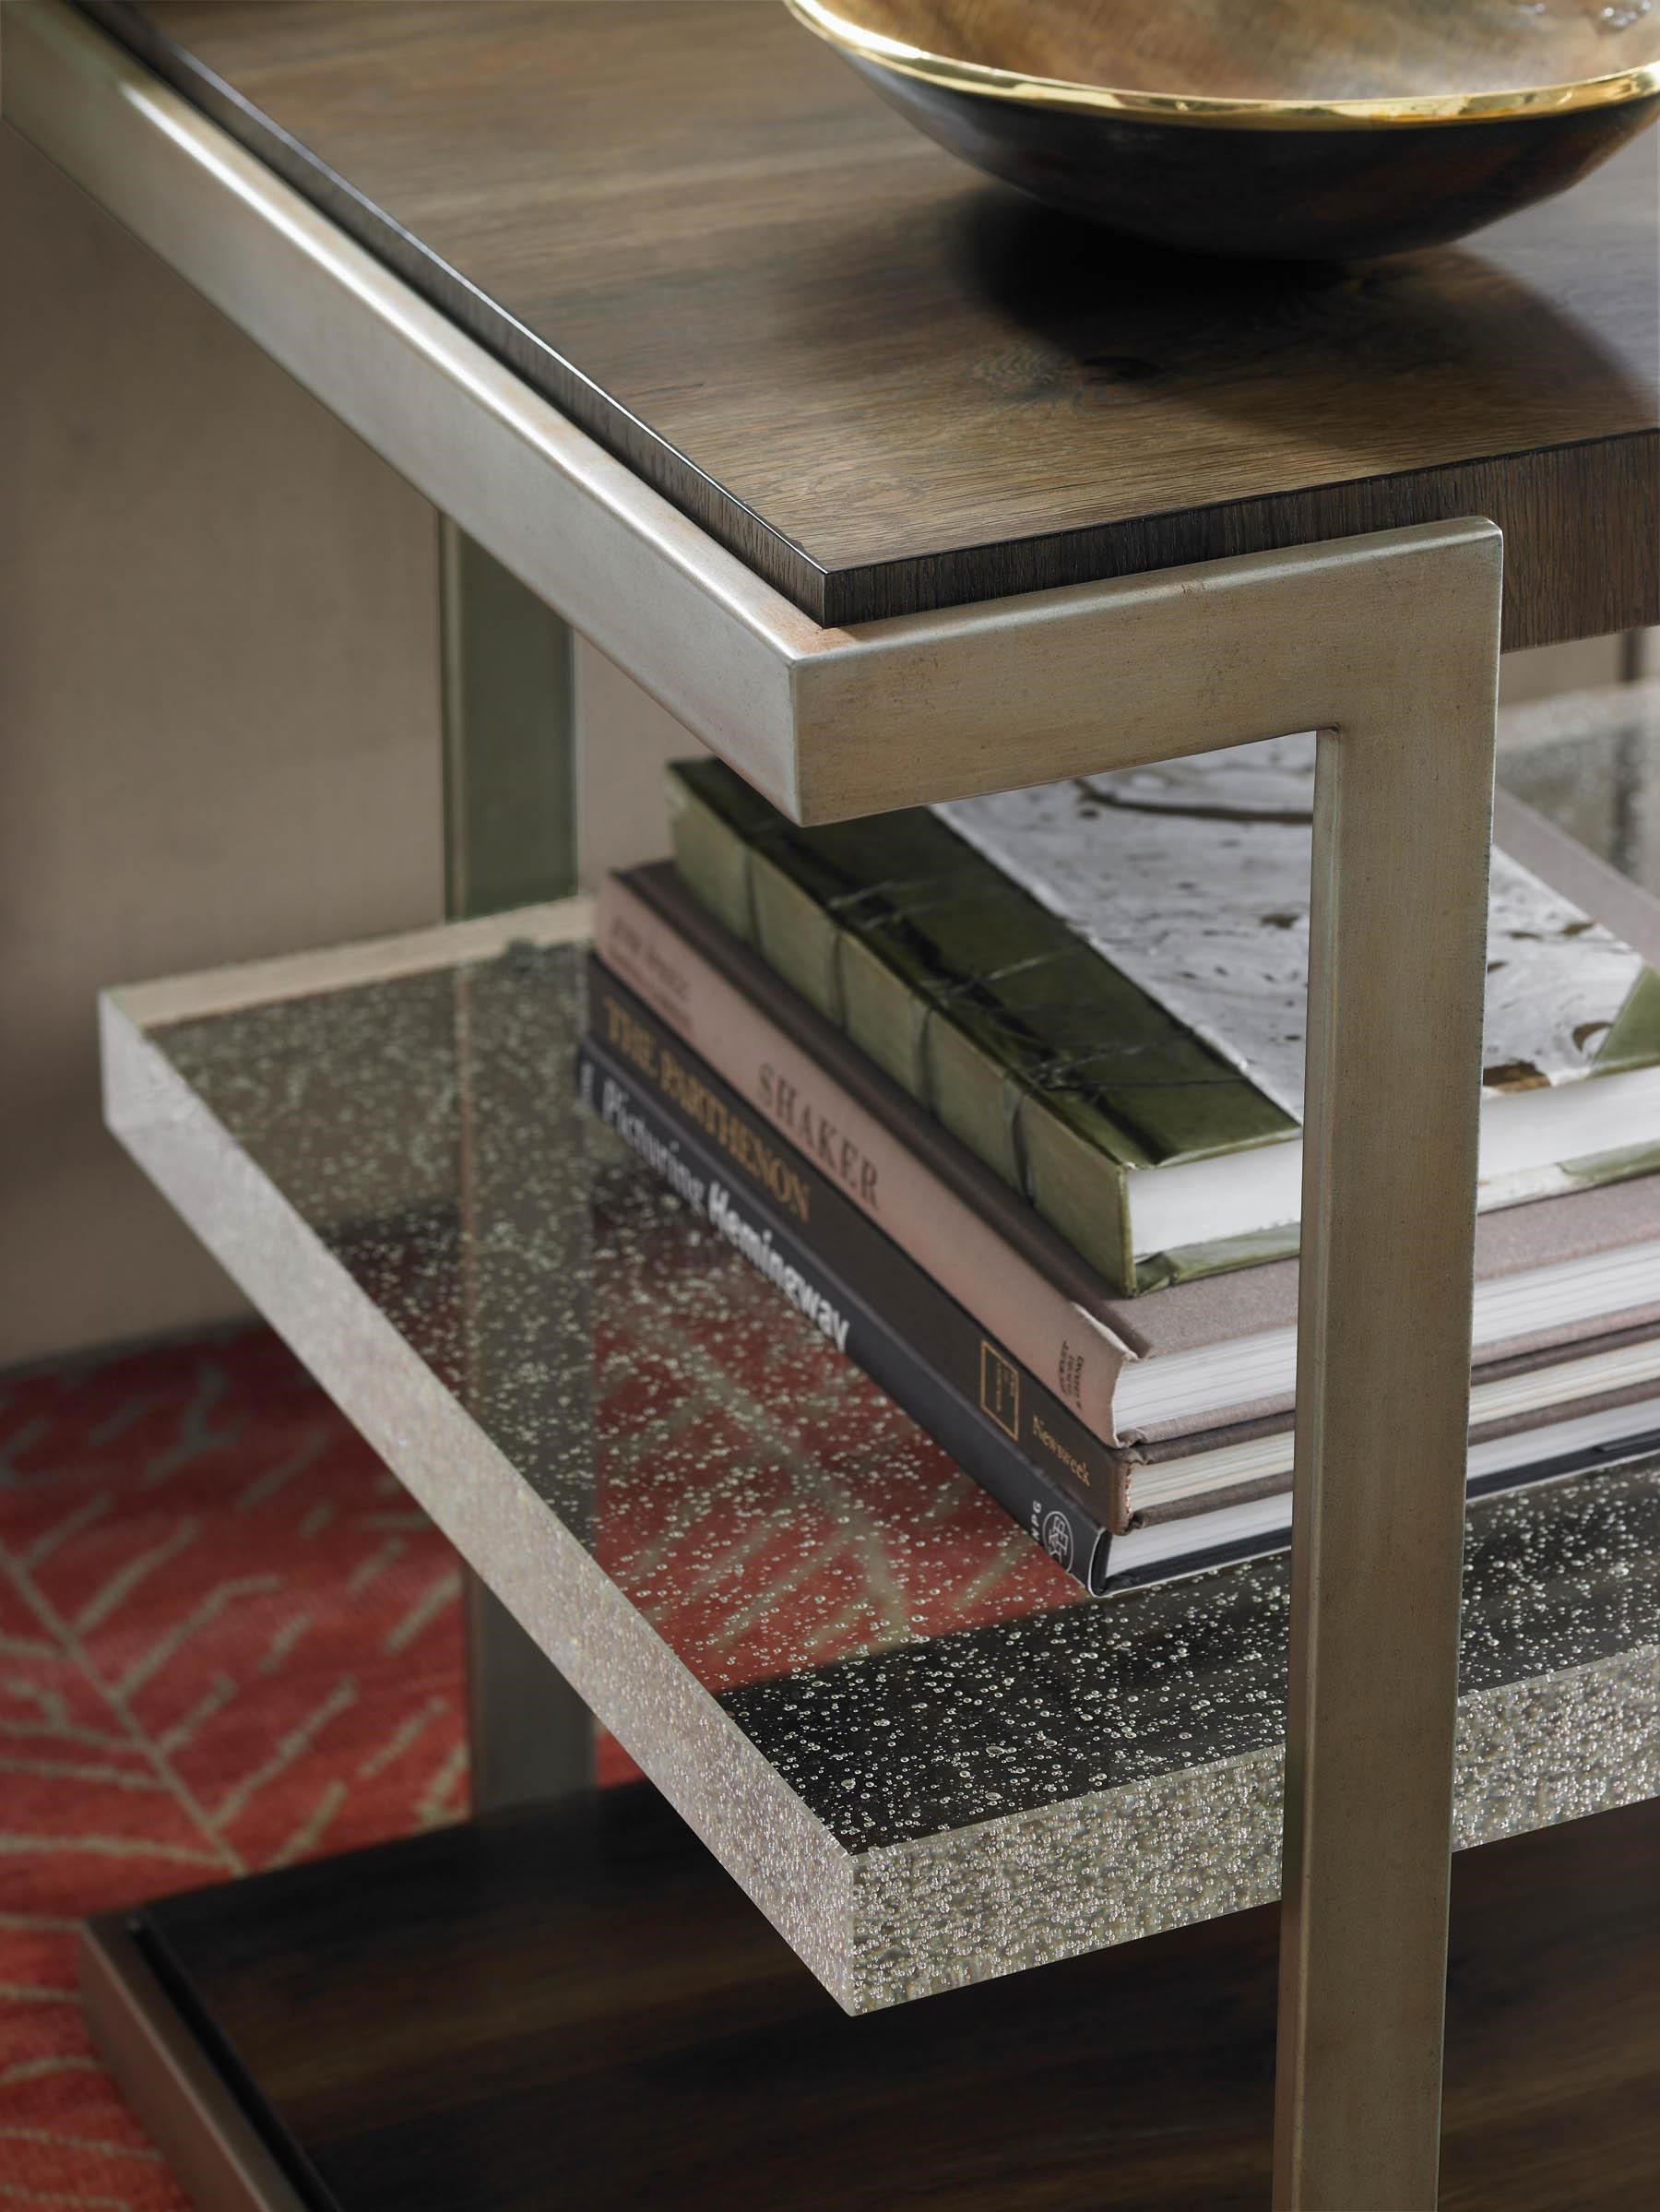 Modern Artisan Artisans End Table With Glass Shelf By Schnadig